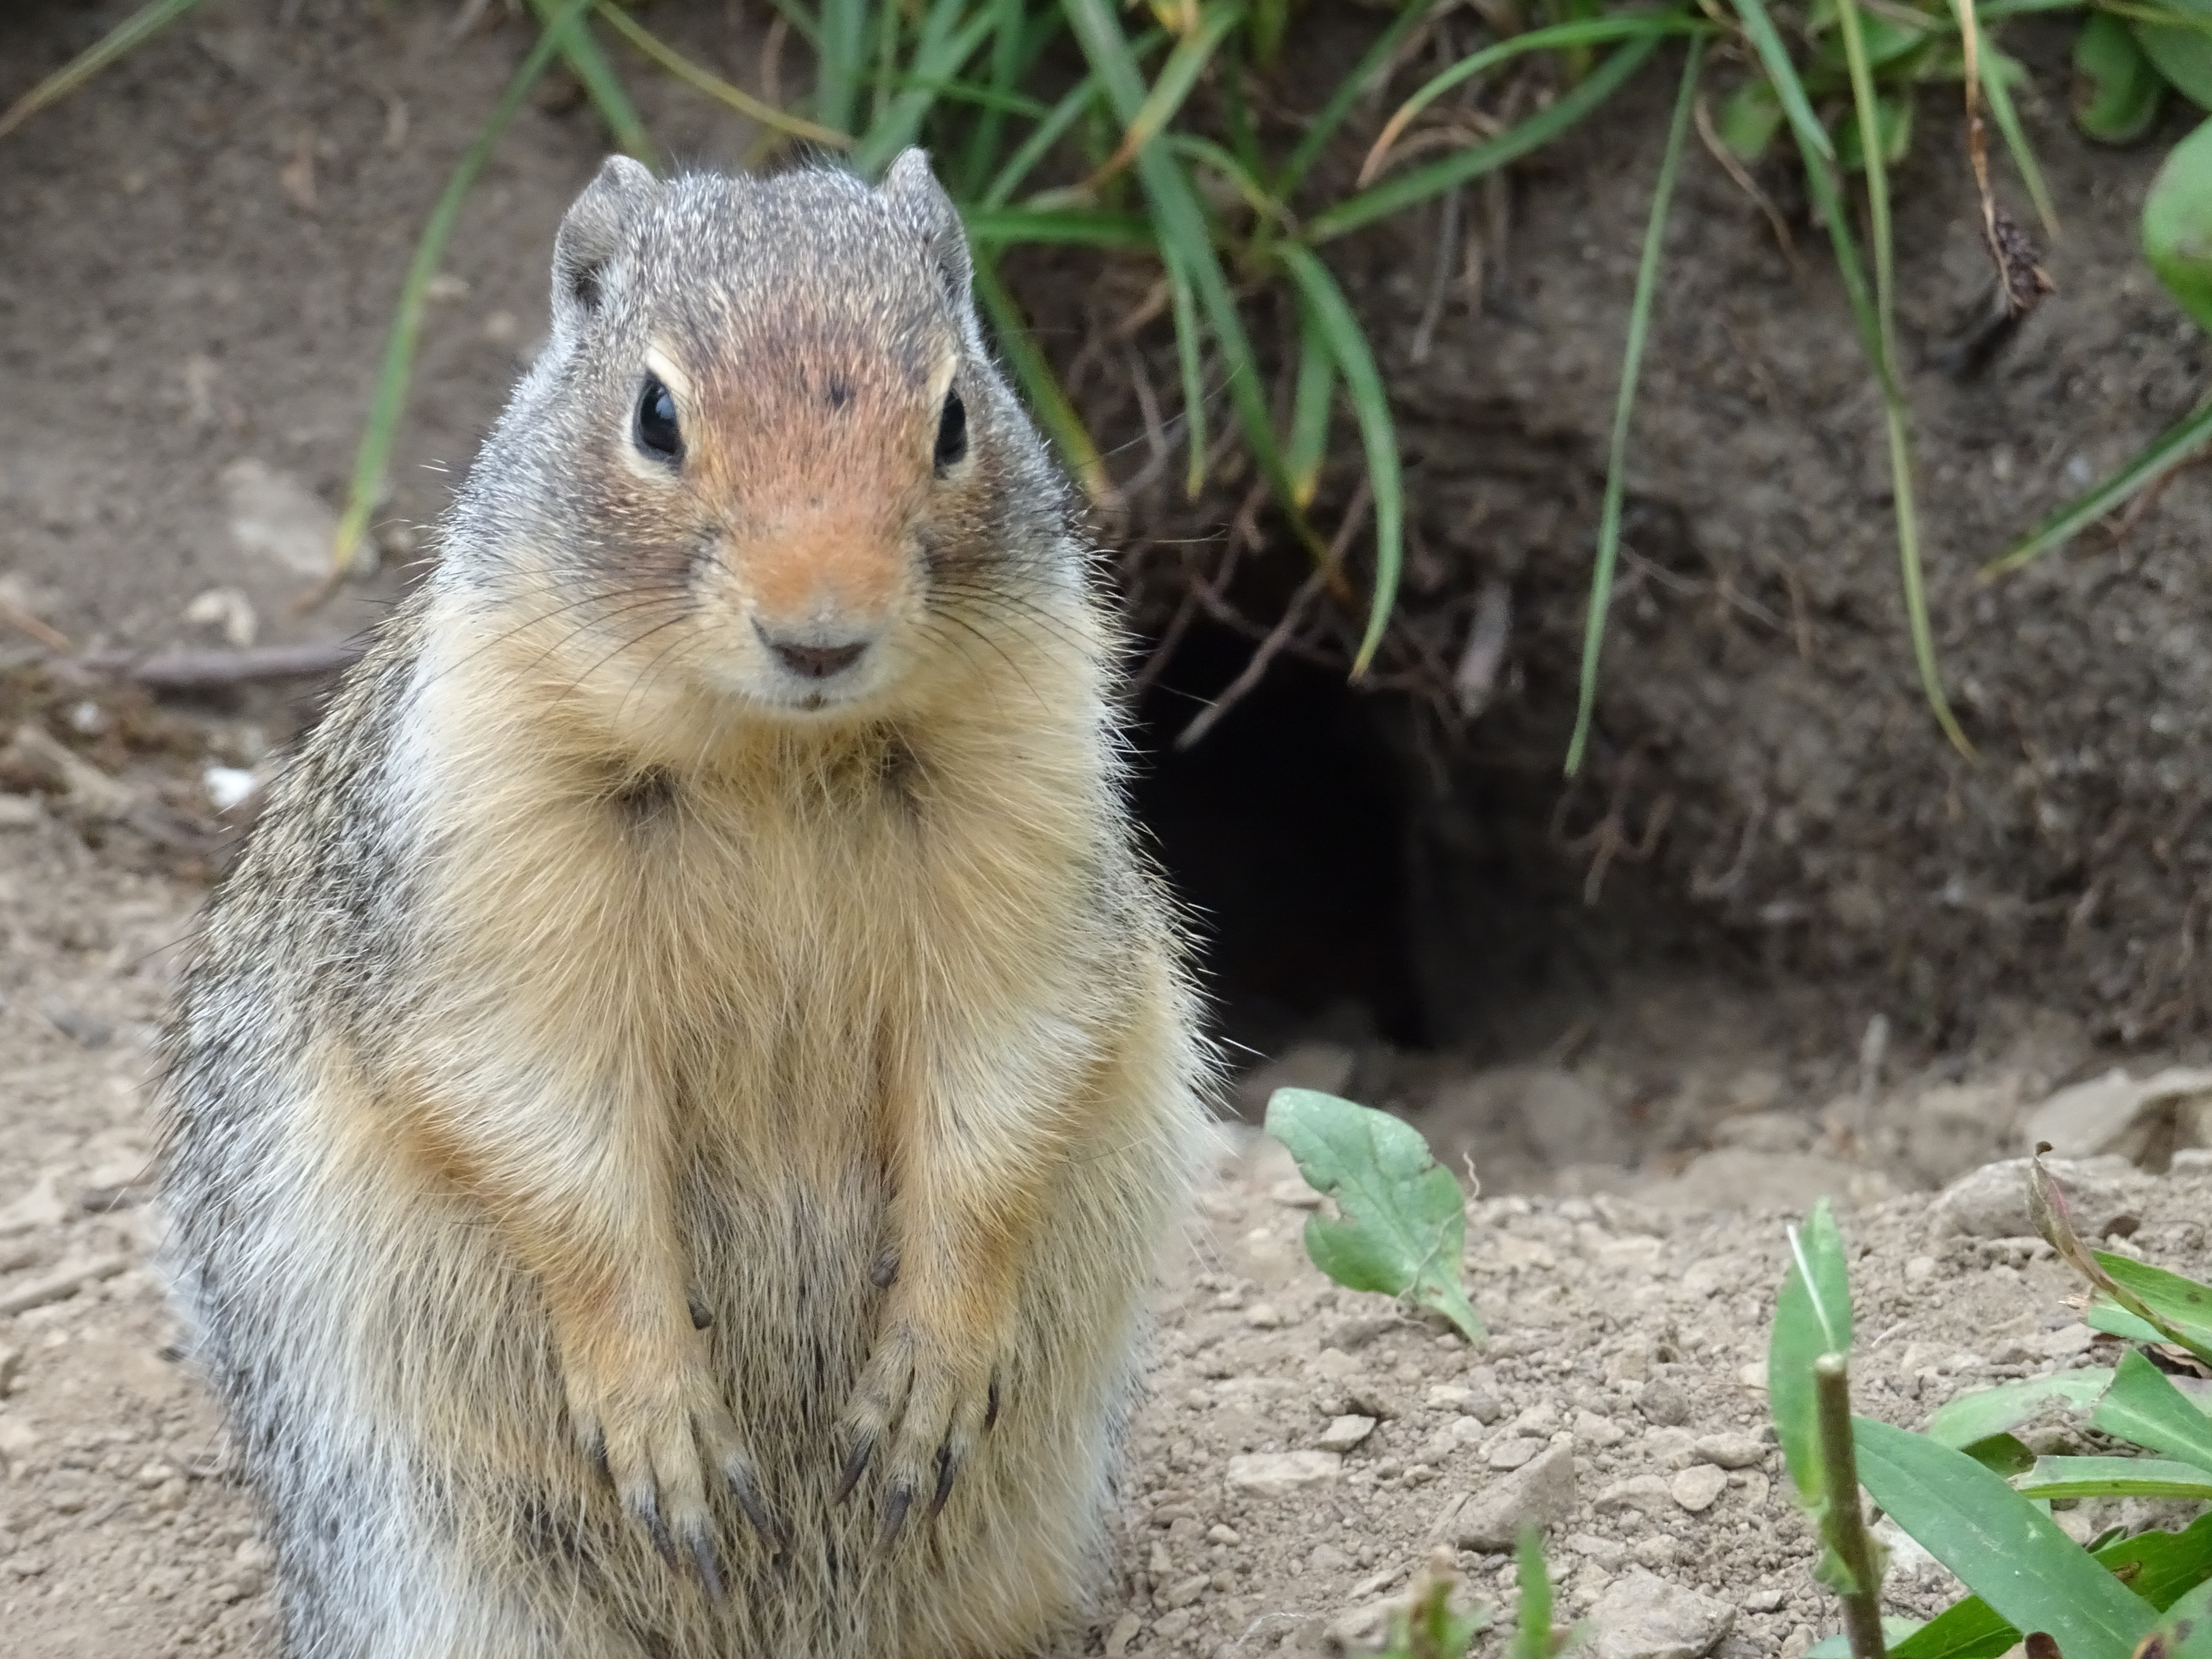 145510 download wallpaper Animals, Marmot, Animal, Is Sitting, Sits, Fat, Thick screensavers and pictures for free